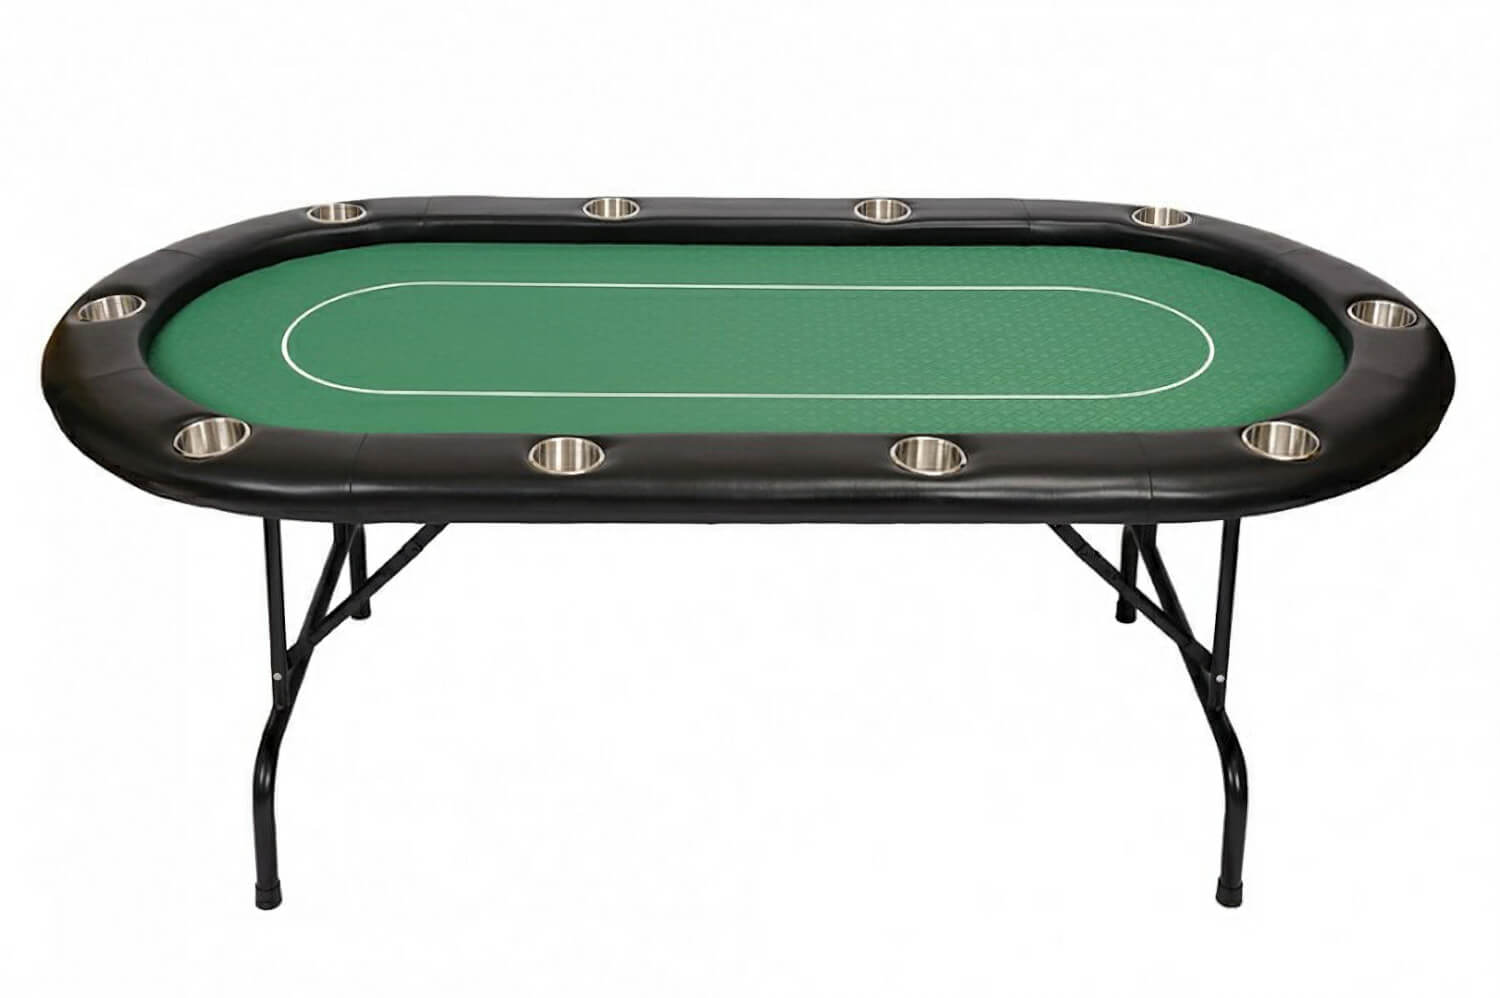 10 person pro poker table green bcfolding green for 10 person poker table top